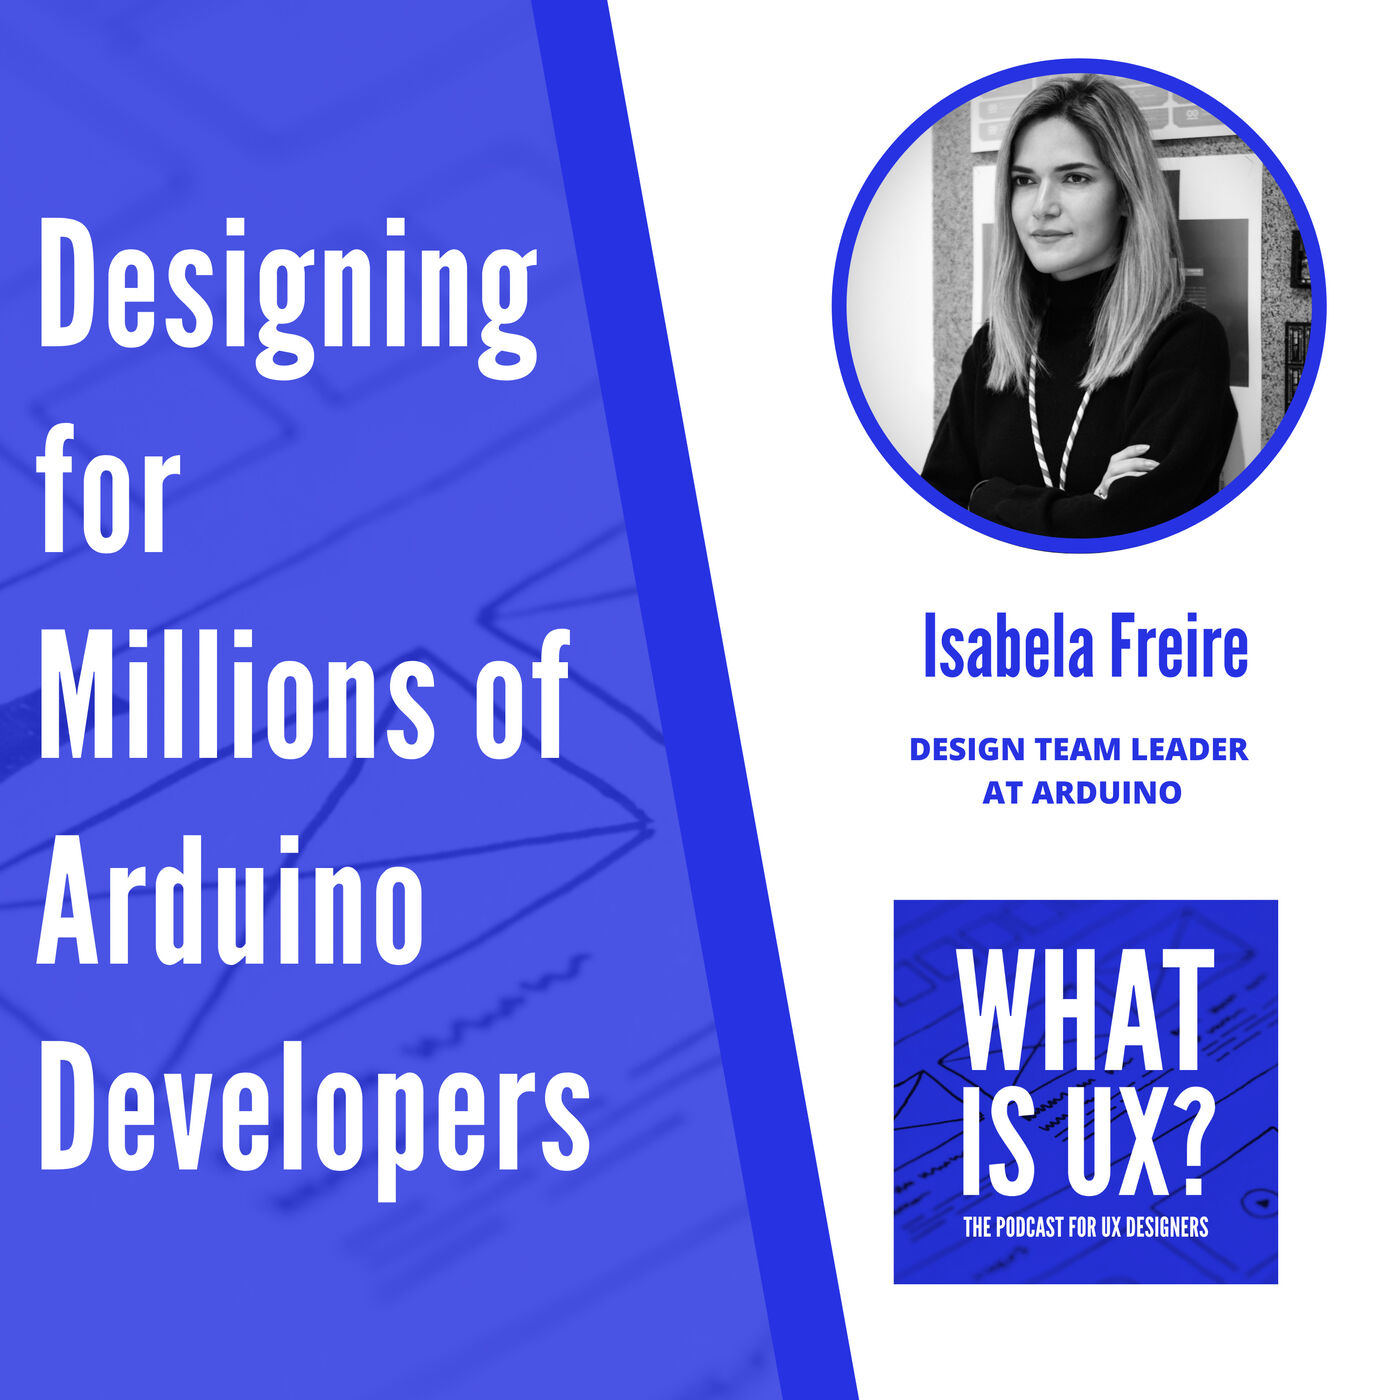 S2E3 Designing for Millions of Arduino Developers, an interview with Isabela Freire, Design Team Leader at Arduino